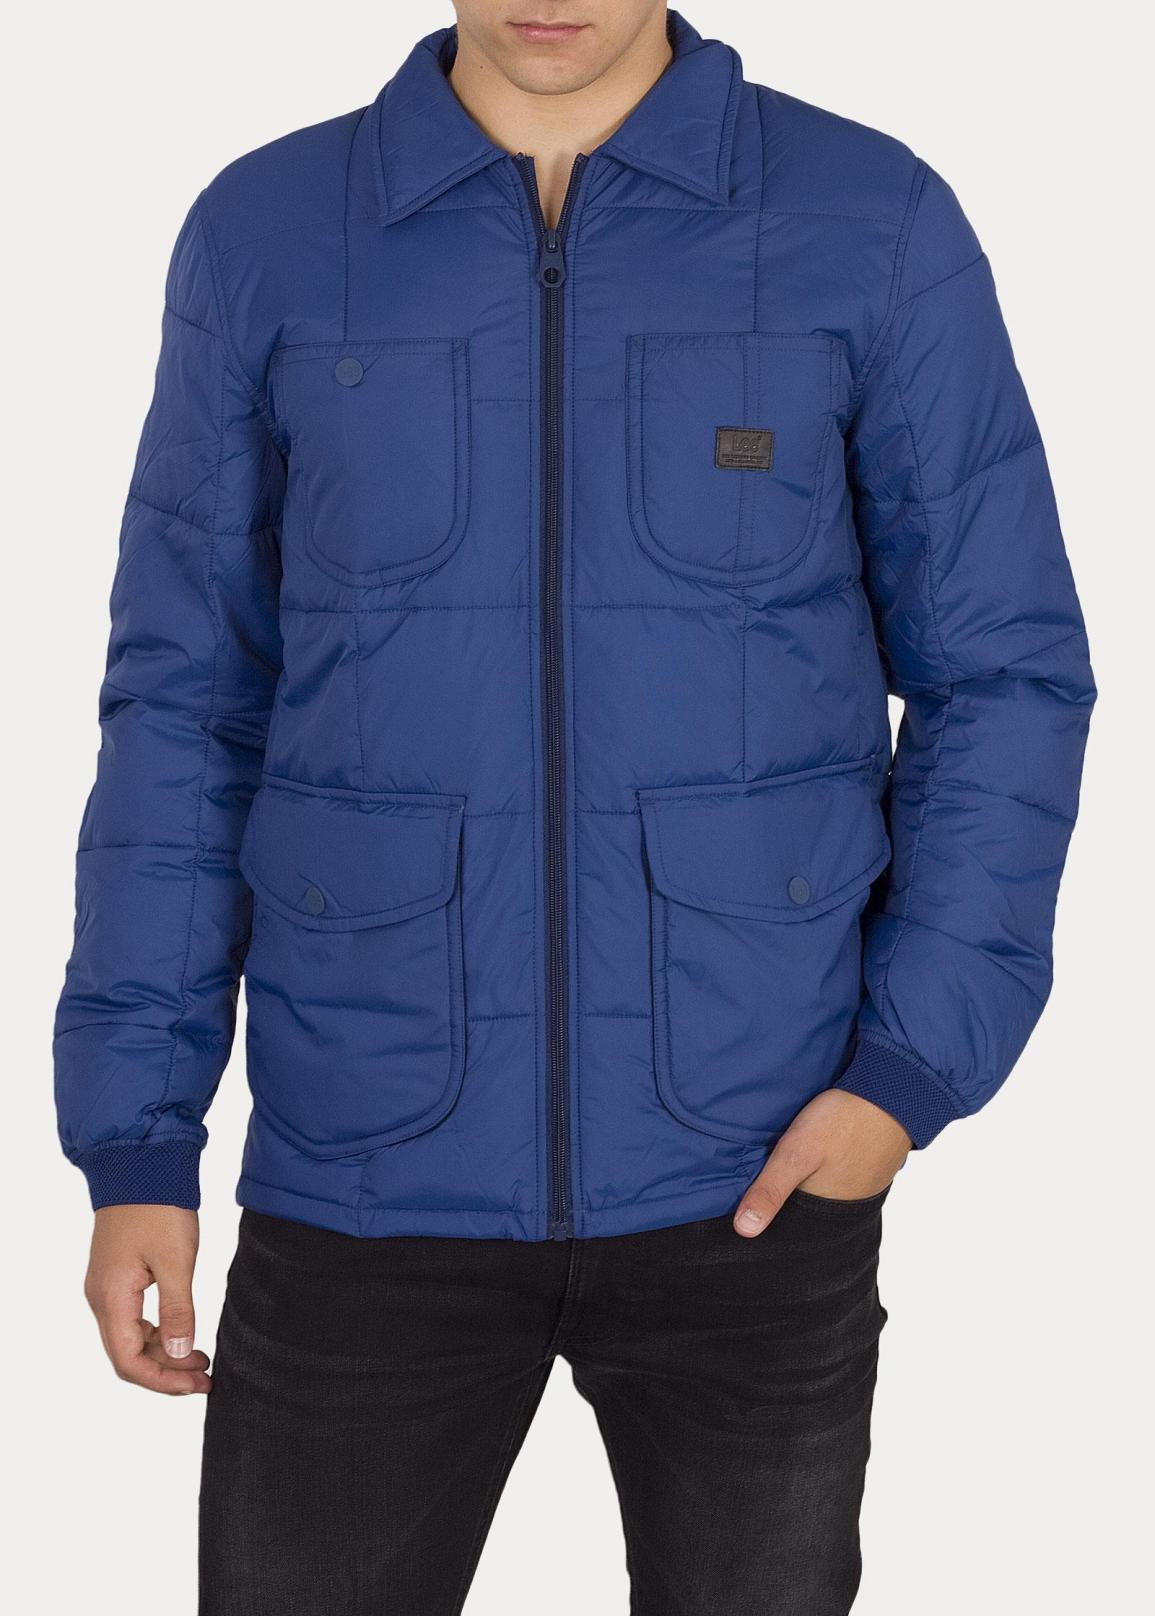 Lee® Lightweight Padded Jacket - Oil Blue